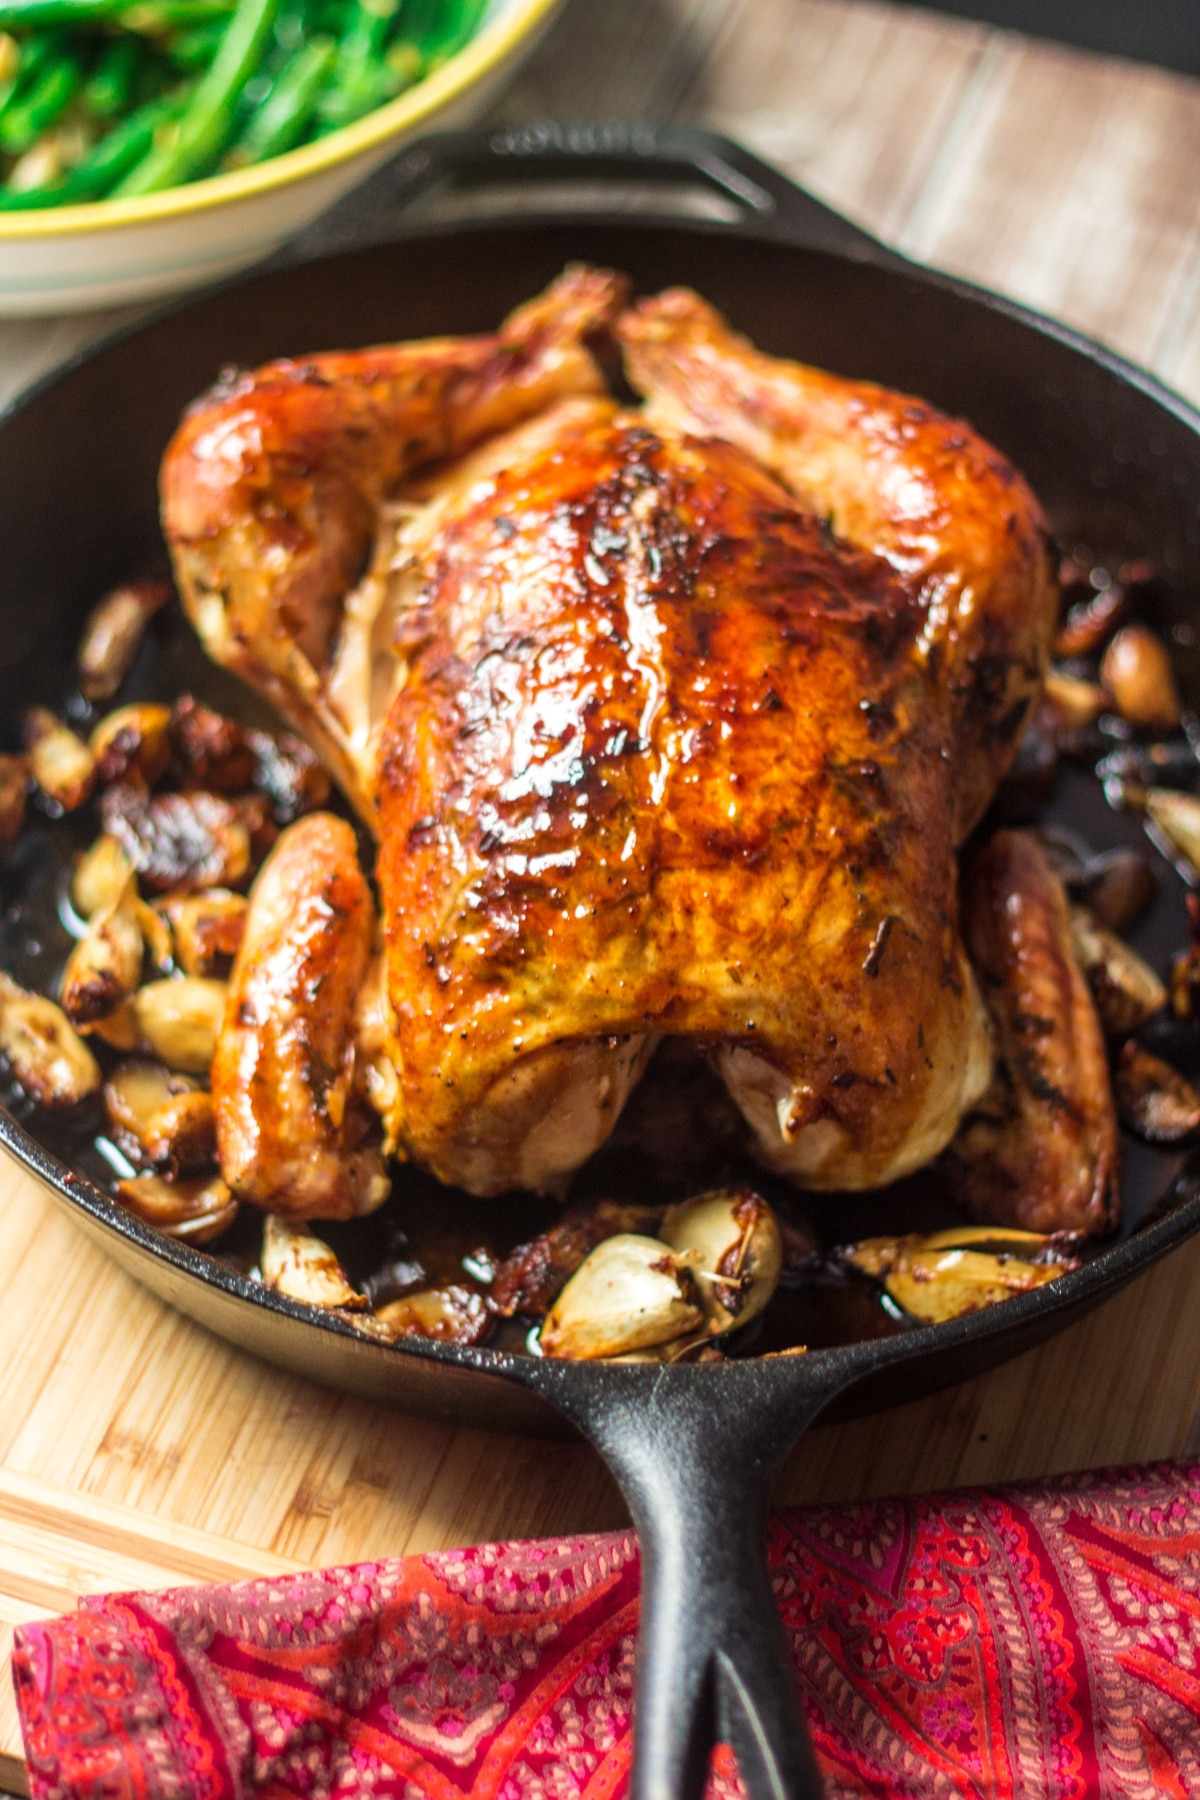 roasted-chicke-40-cloves-garlic